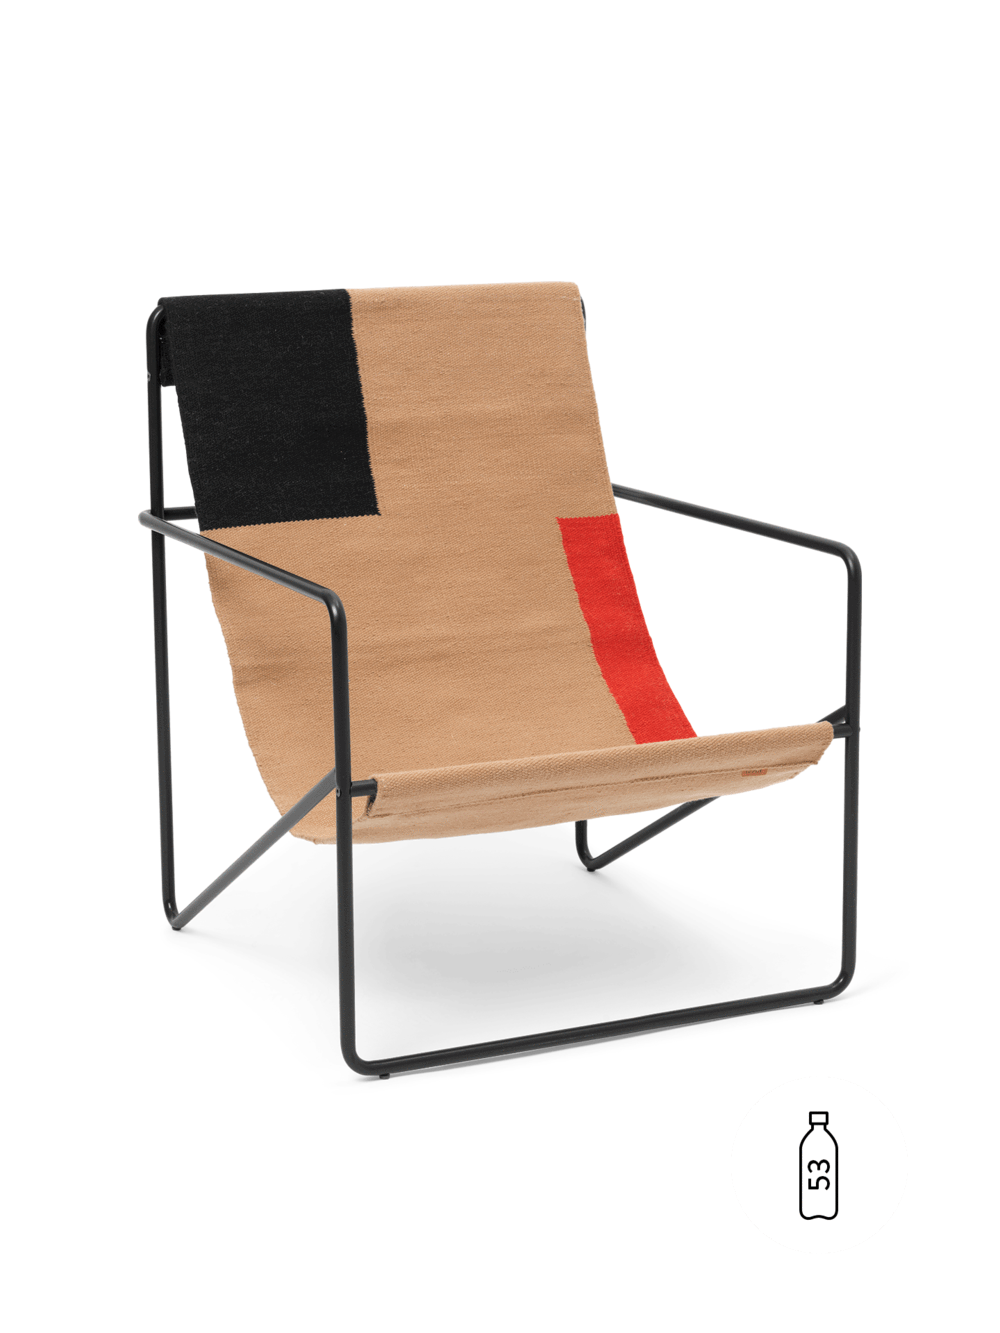 ferm living Desert Lounge Chair - Black/Block